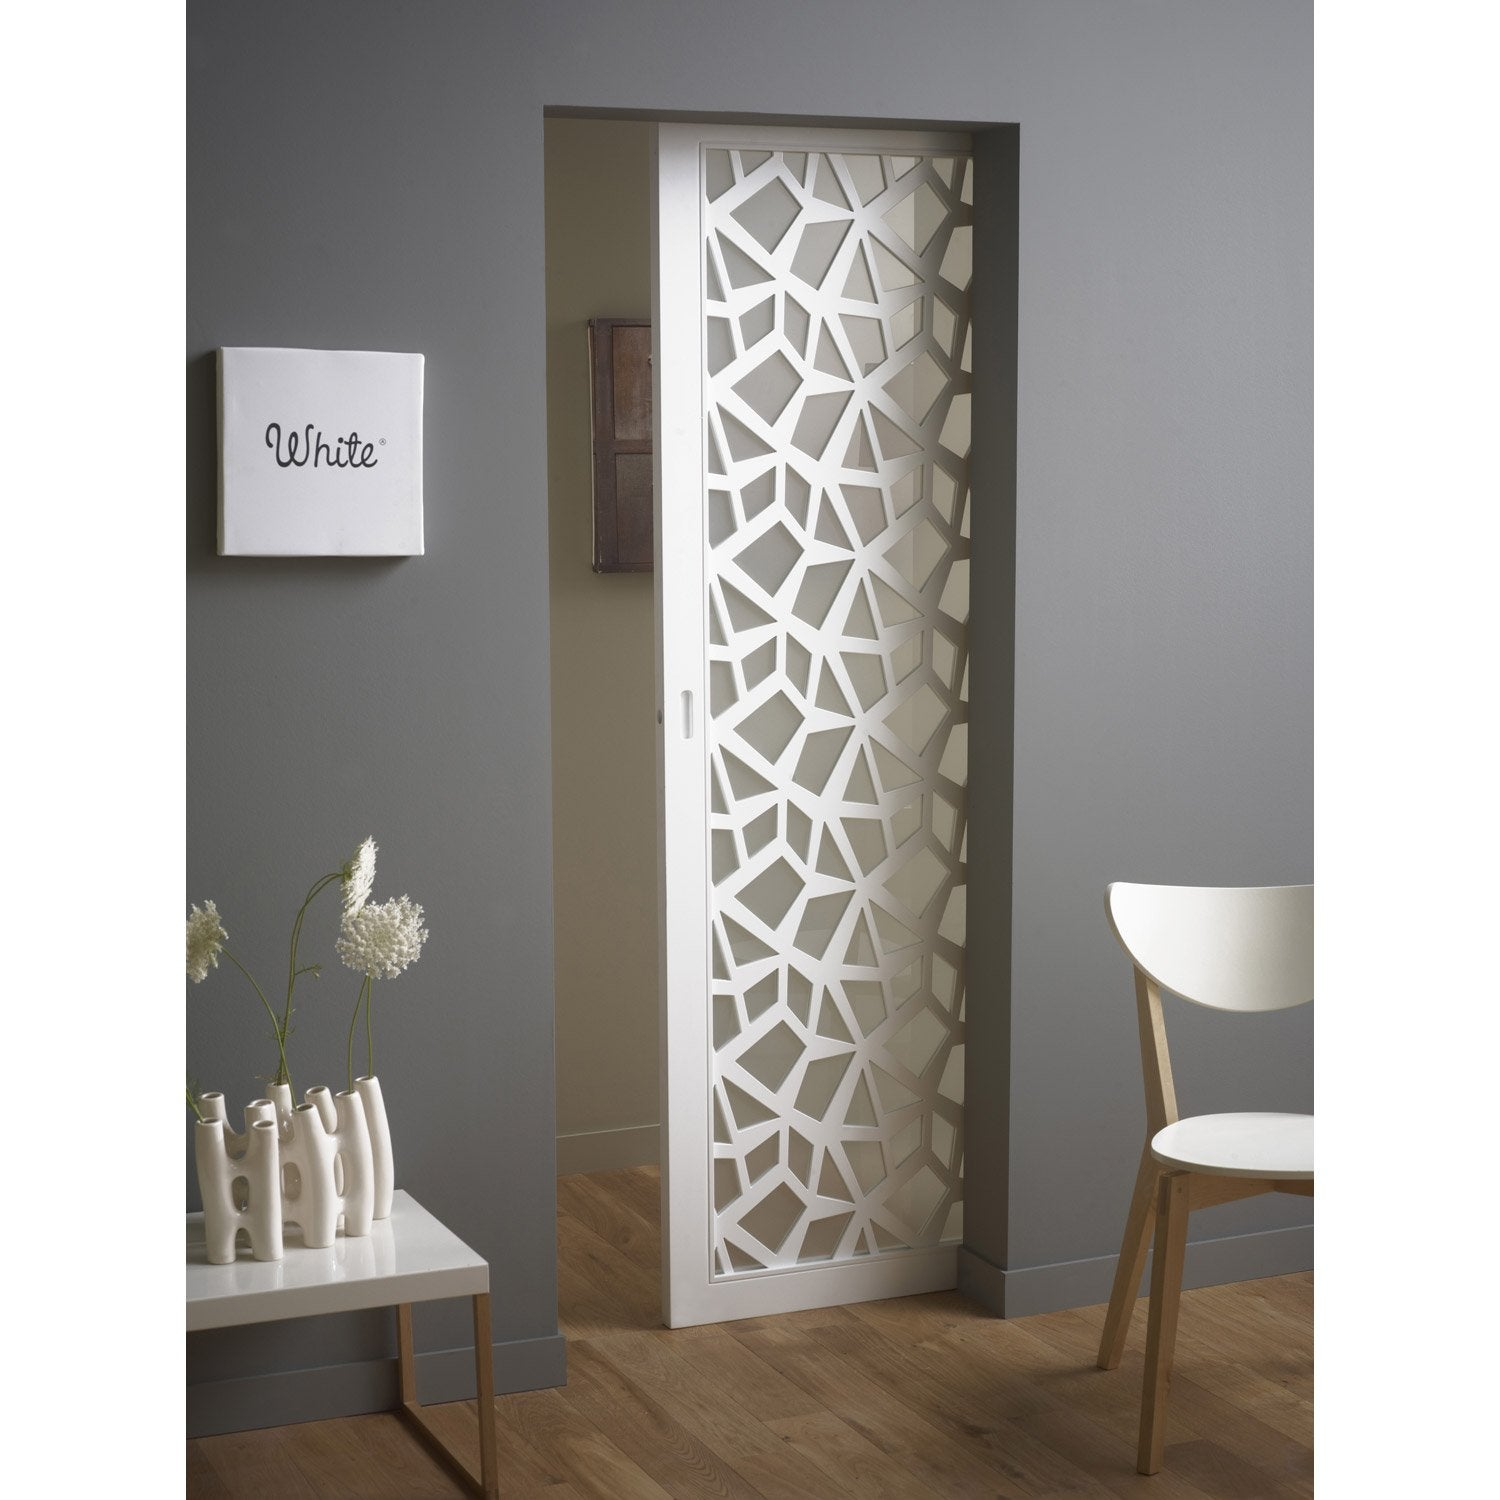 Porte bois design porte interieur pictures to pin on pinterest - Porte coulissante en verre leroy merlin ...